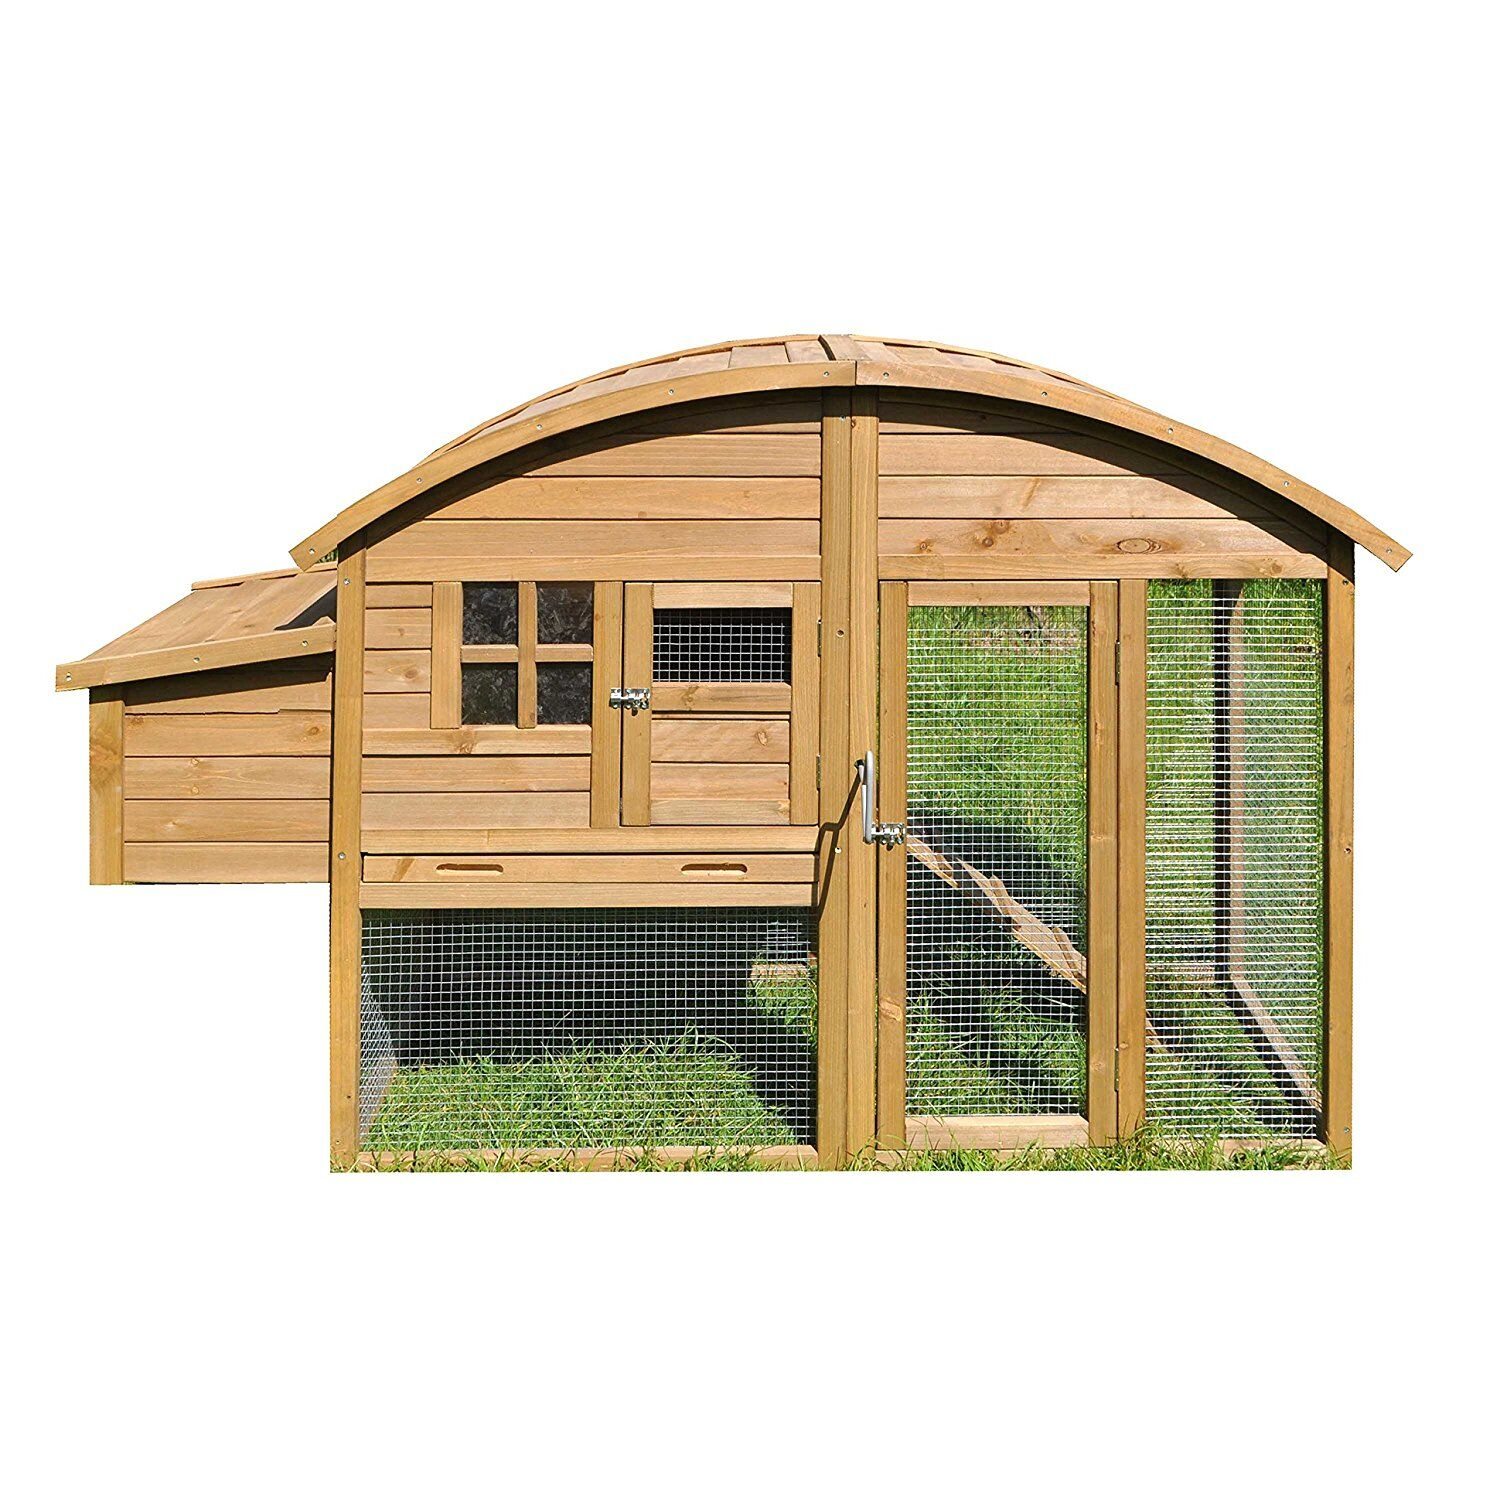 Kershaw Wooden Chicken House with Roof Access